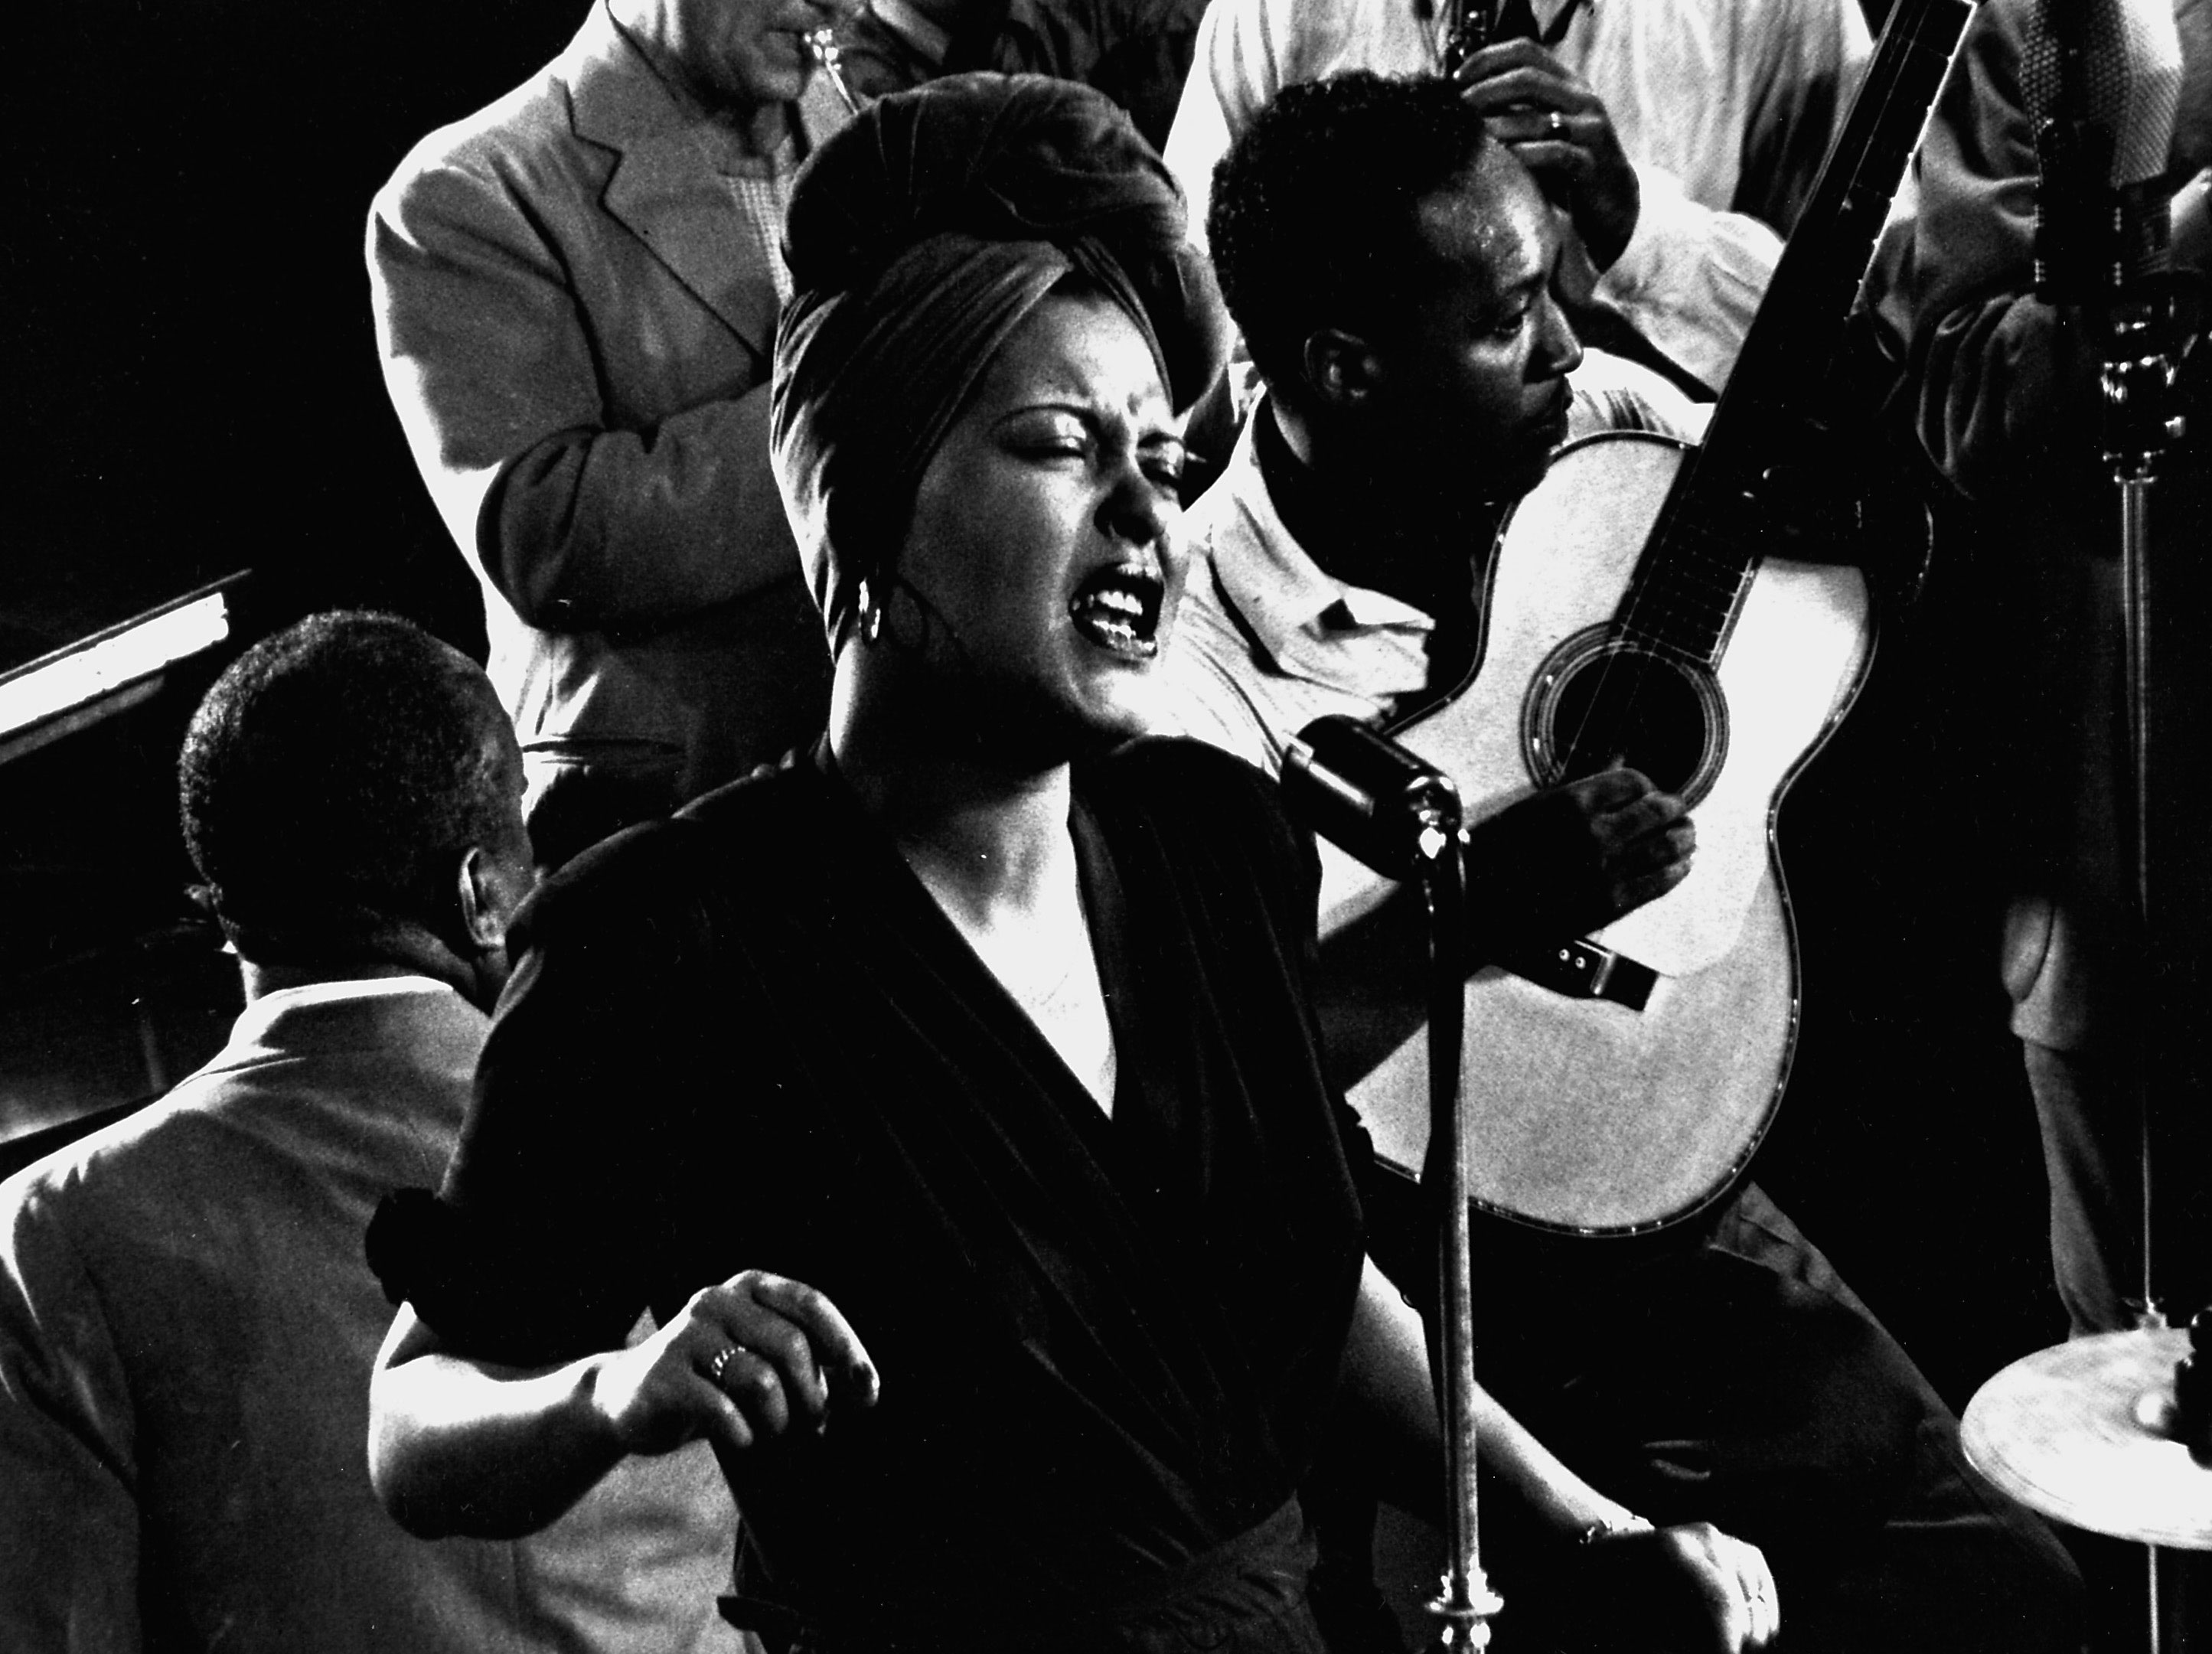 """Billie Holiday sings her standard, """"Fine and Mellow,"""" accompanied by James P. Johnson on piano and others, New York, 1943."""